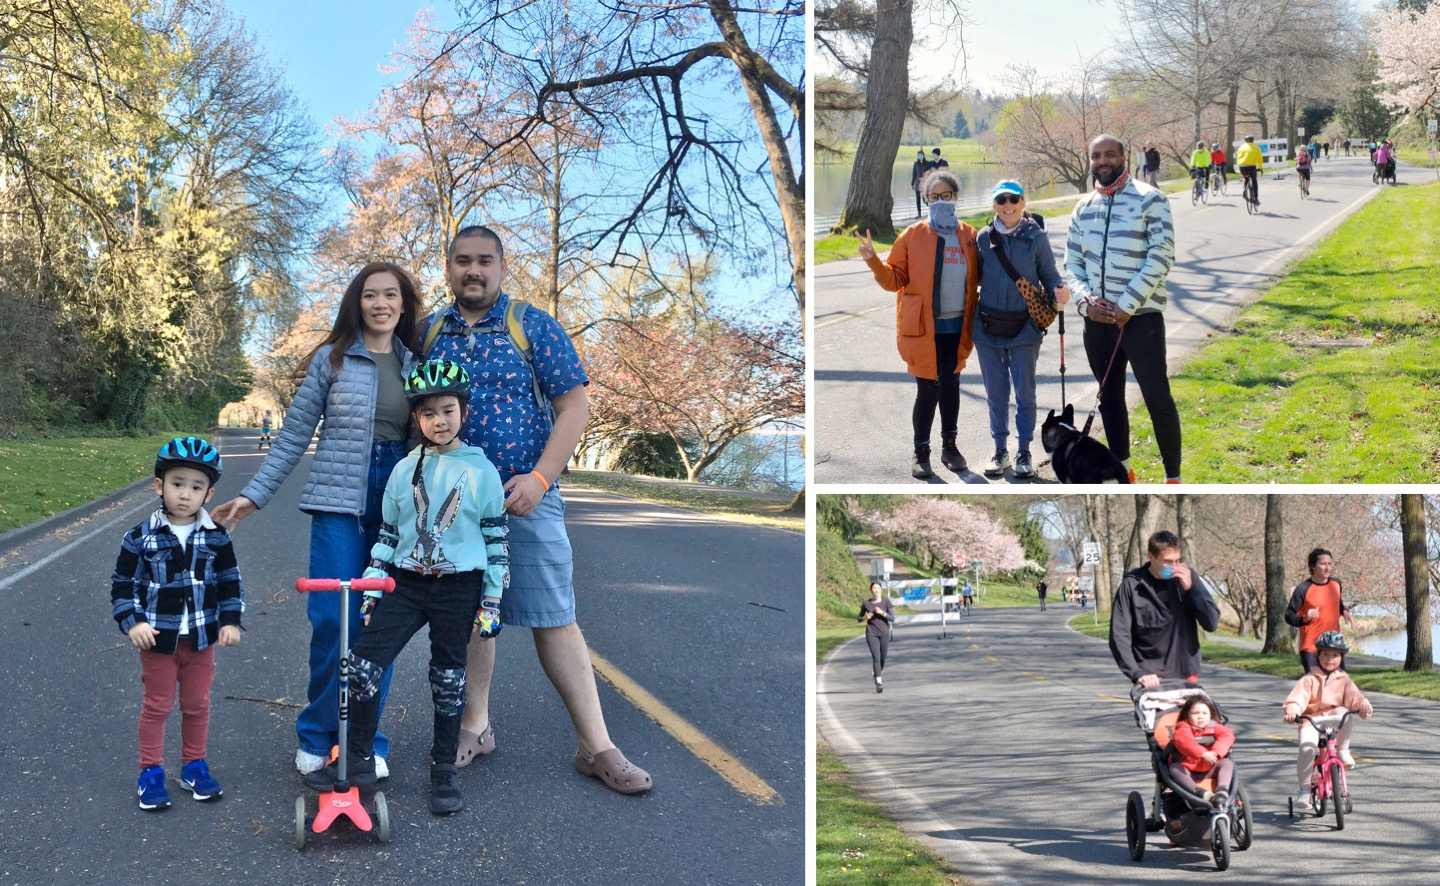 A collage of photos of families walking, biking, and riding scooters on Lake Washington Boulevard.